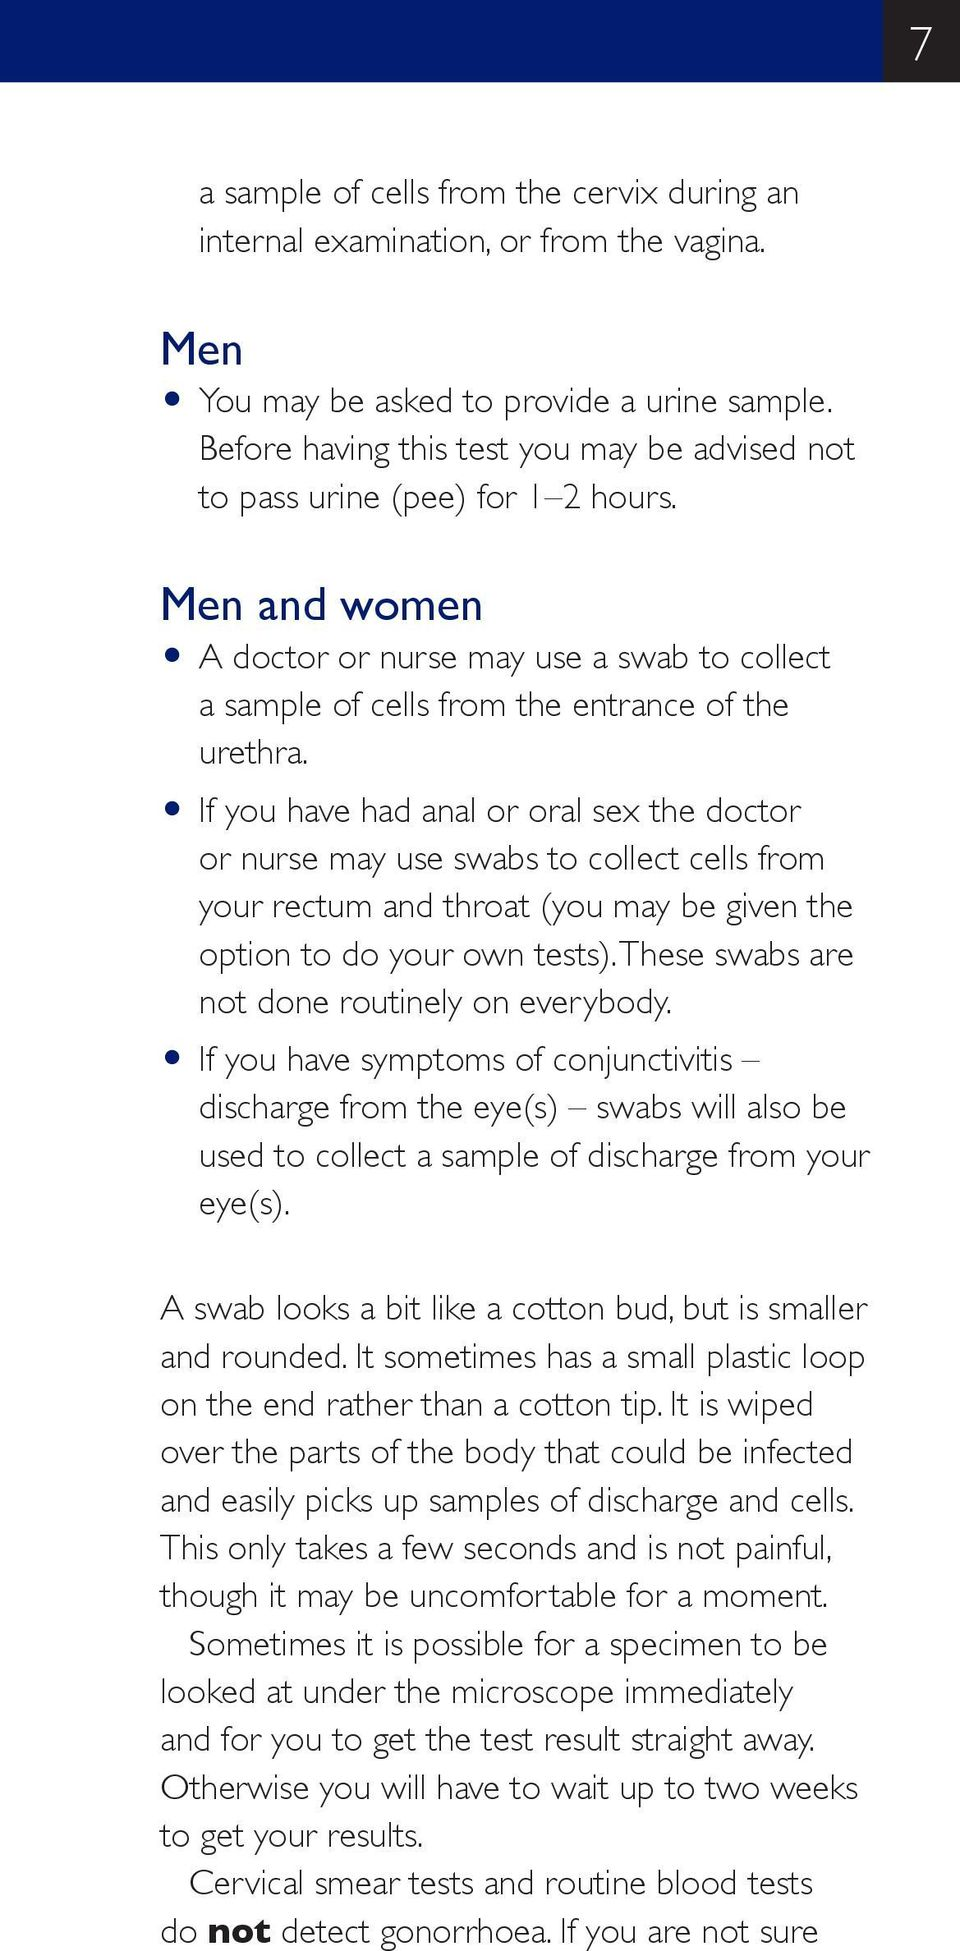 O If you have had anal or oral sex the doctor or nurse may use swabs to collect cells from your rectum and throat (you may be given the option to do your own tests).